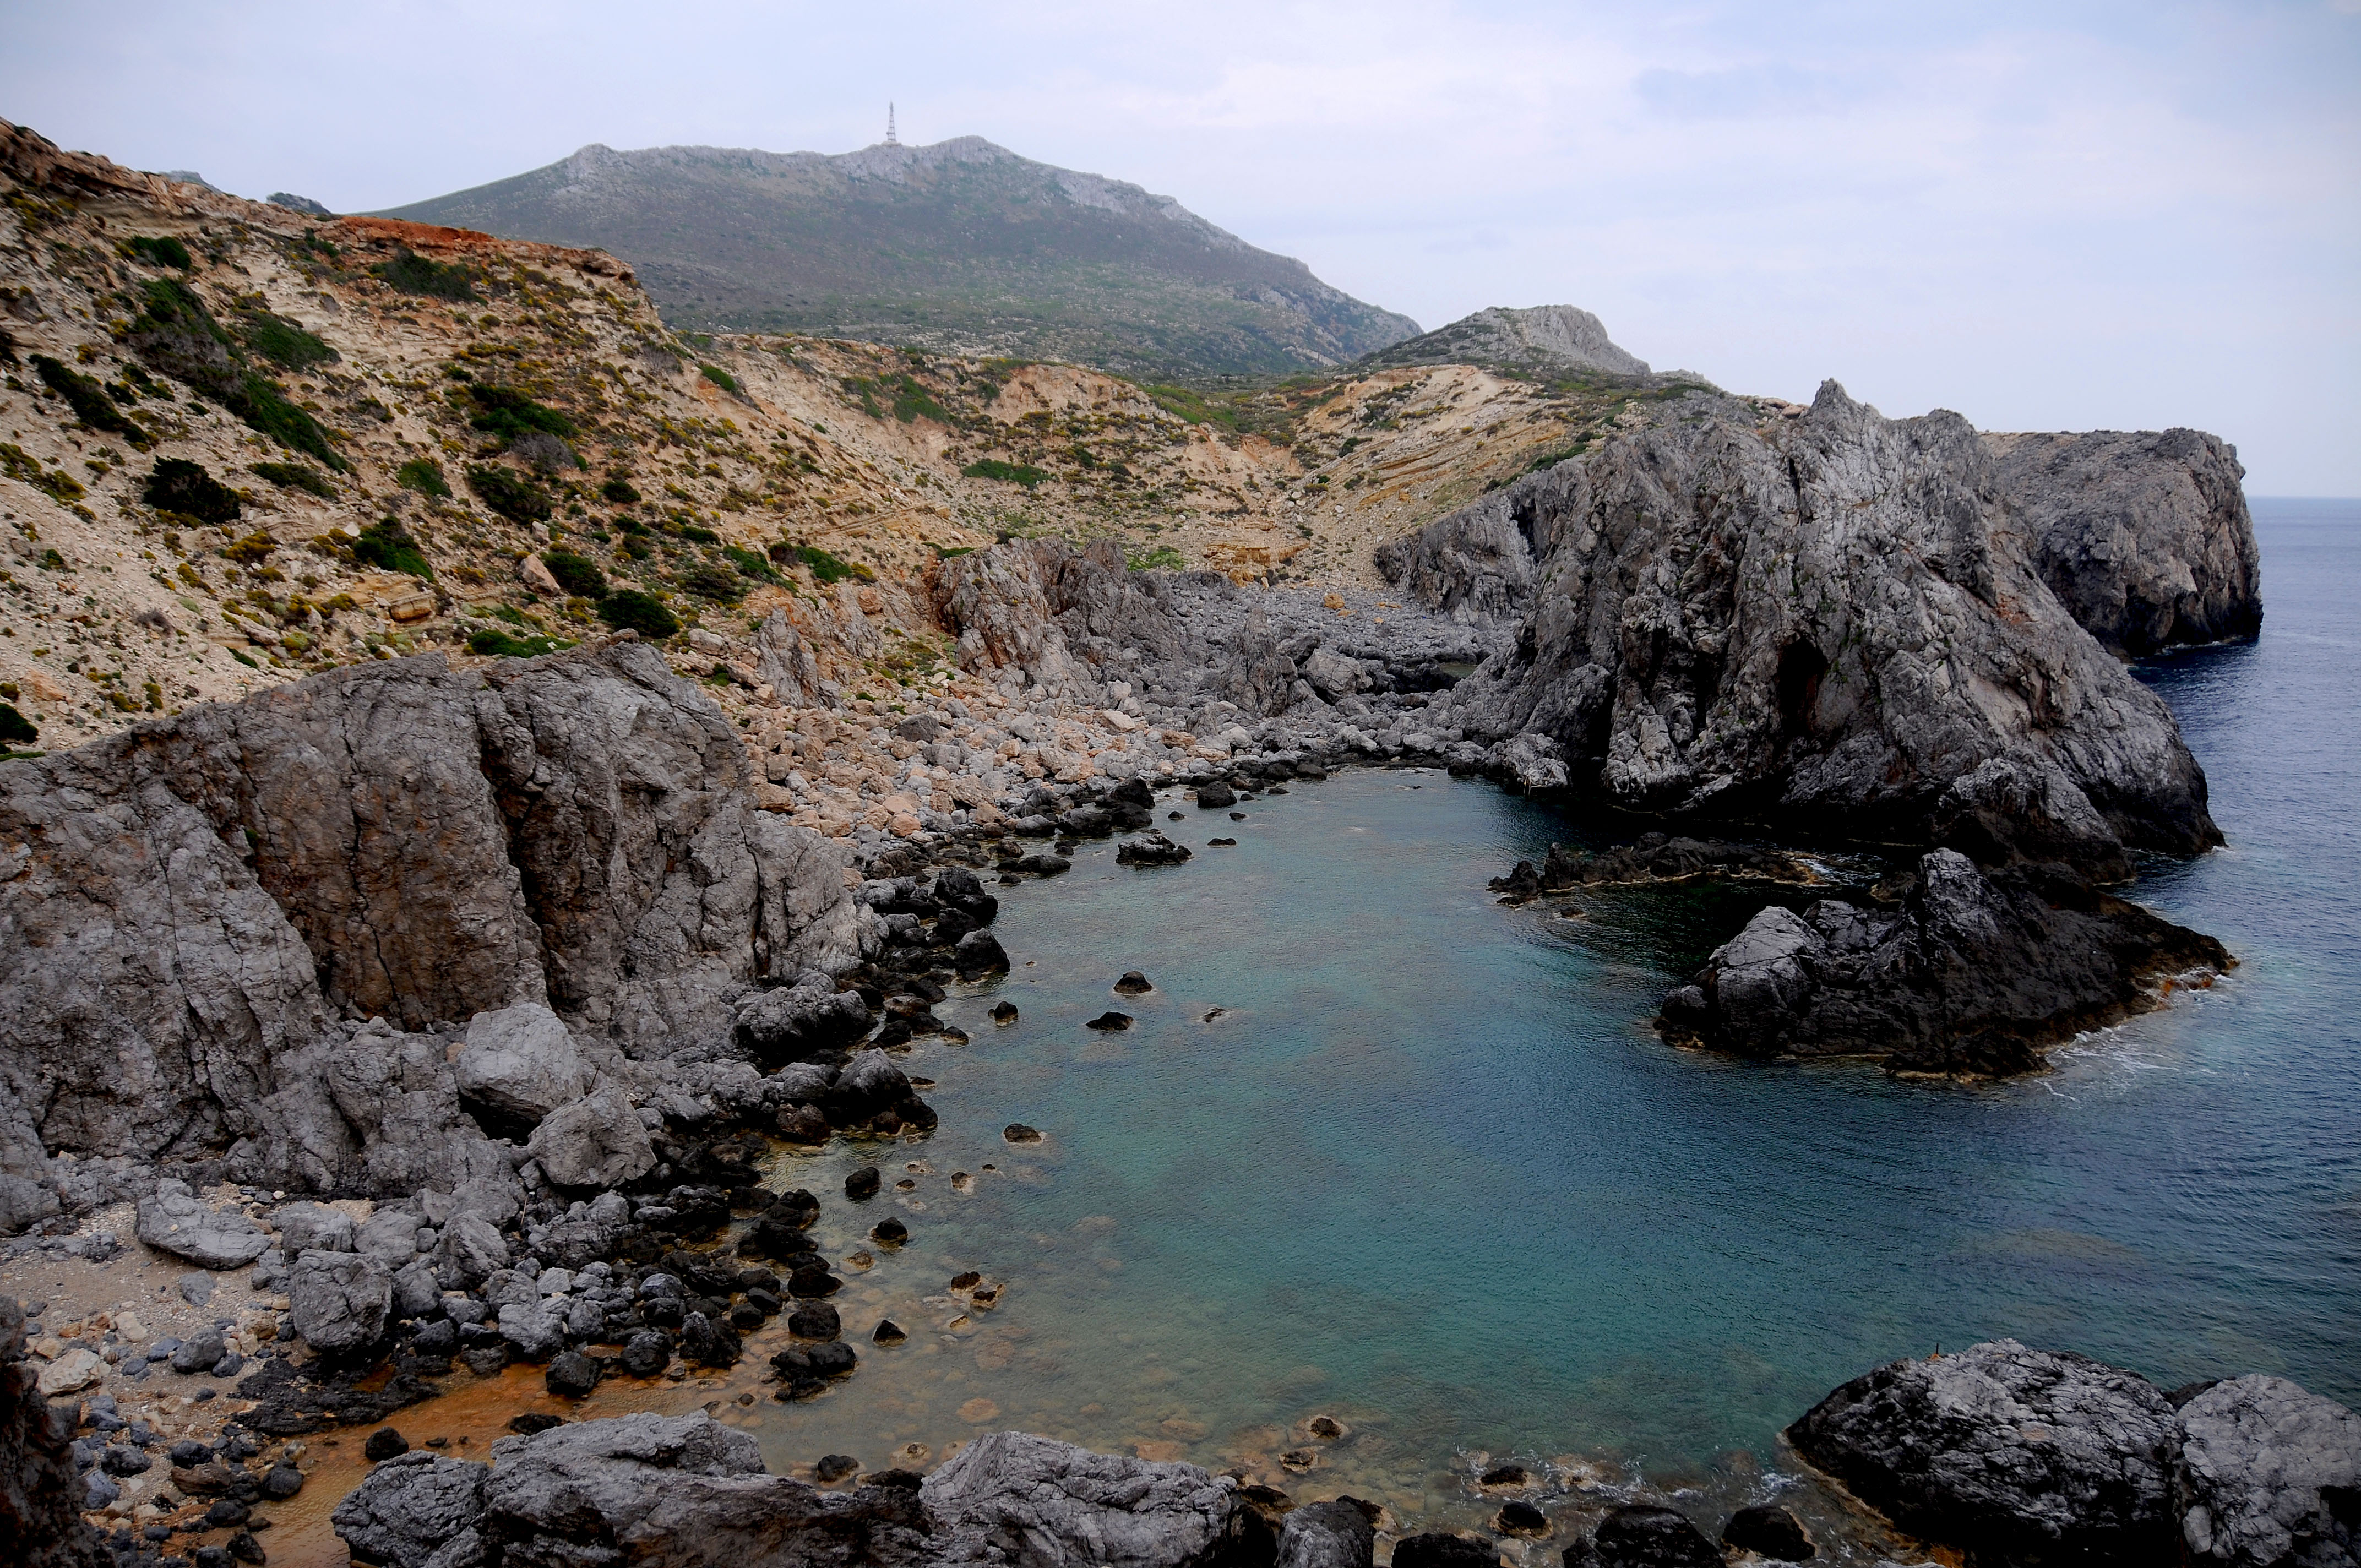 Anjci All Over | Antikythira: A forgotten island in the outskirts of the Aegean